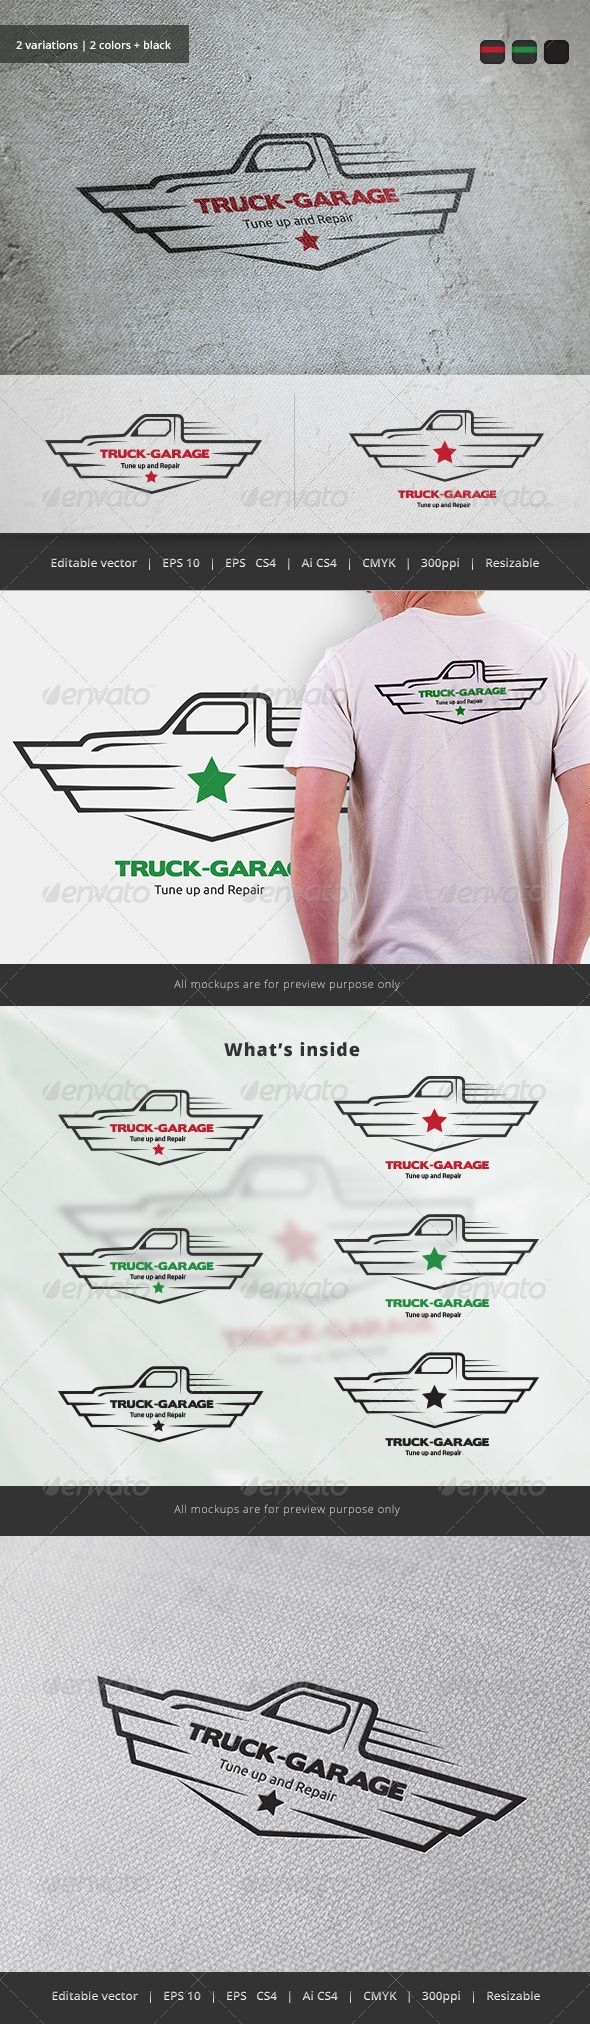 Truck Garage Crest Logo — Vector EPS #truck #vehicle • Available here → https://graphicriver.net/item/truck-garage-crest-logo/5747397?ref=pxcr